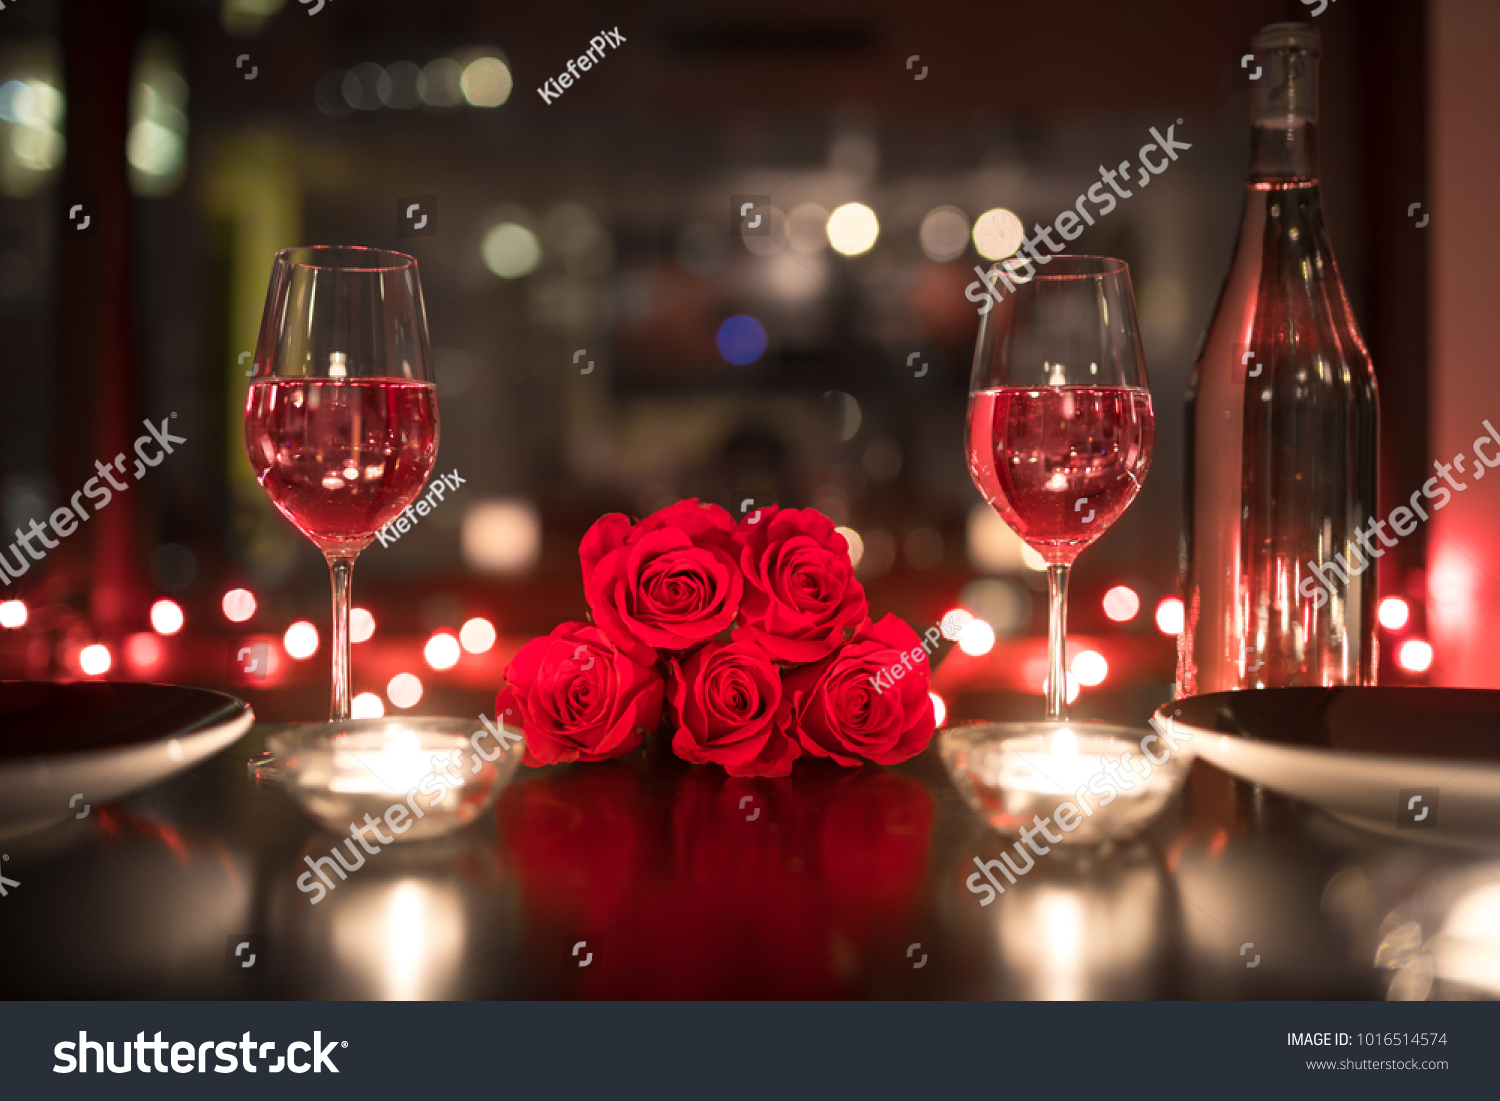 Romantic Candle Light Dinner Date Setting Stock Photo Edit Now 1016514574